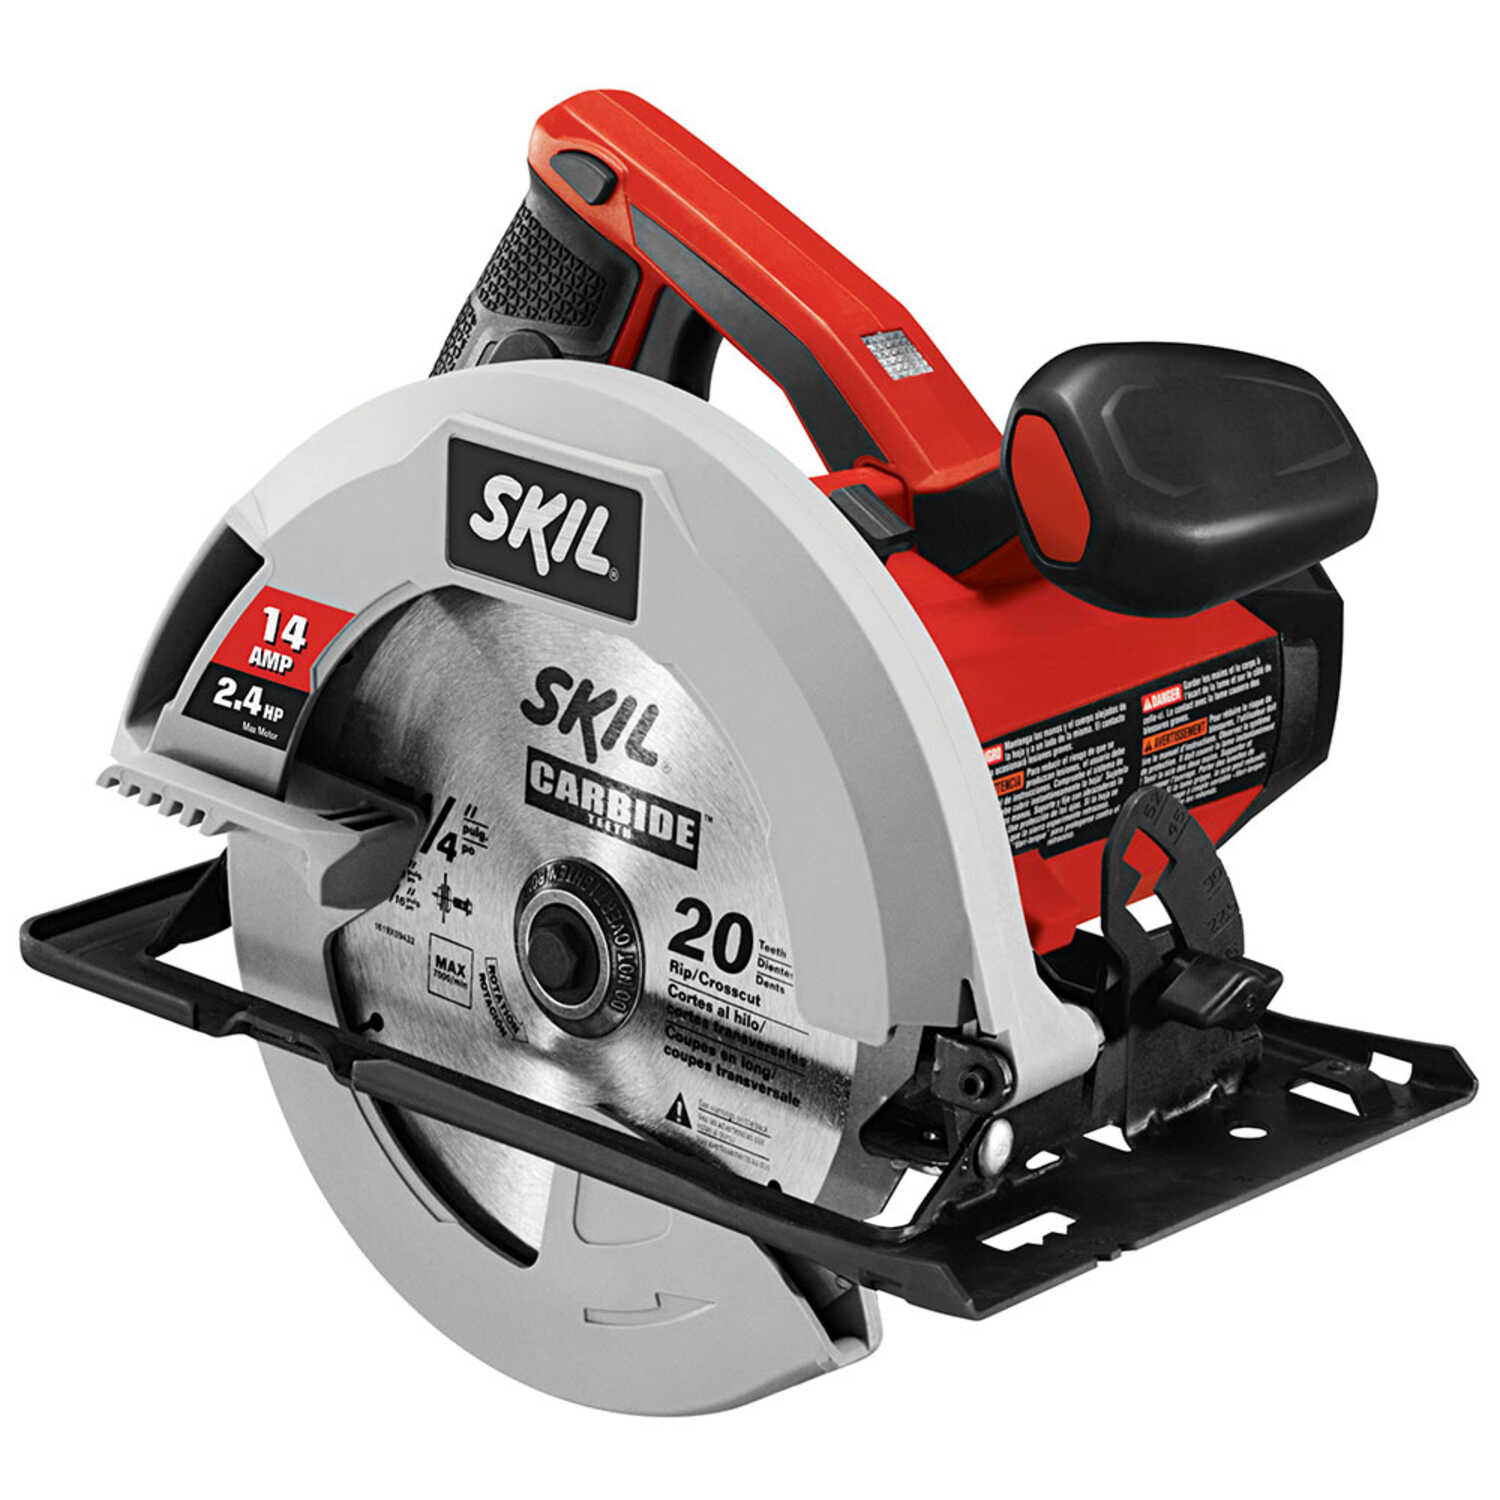 SKILSAW 7-1/4 in. Corded 14 amps Circular Saw Kit 5300 rpm